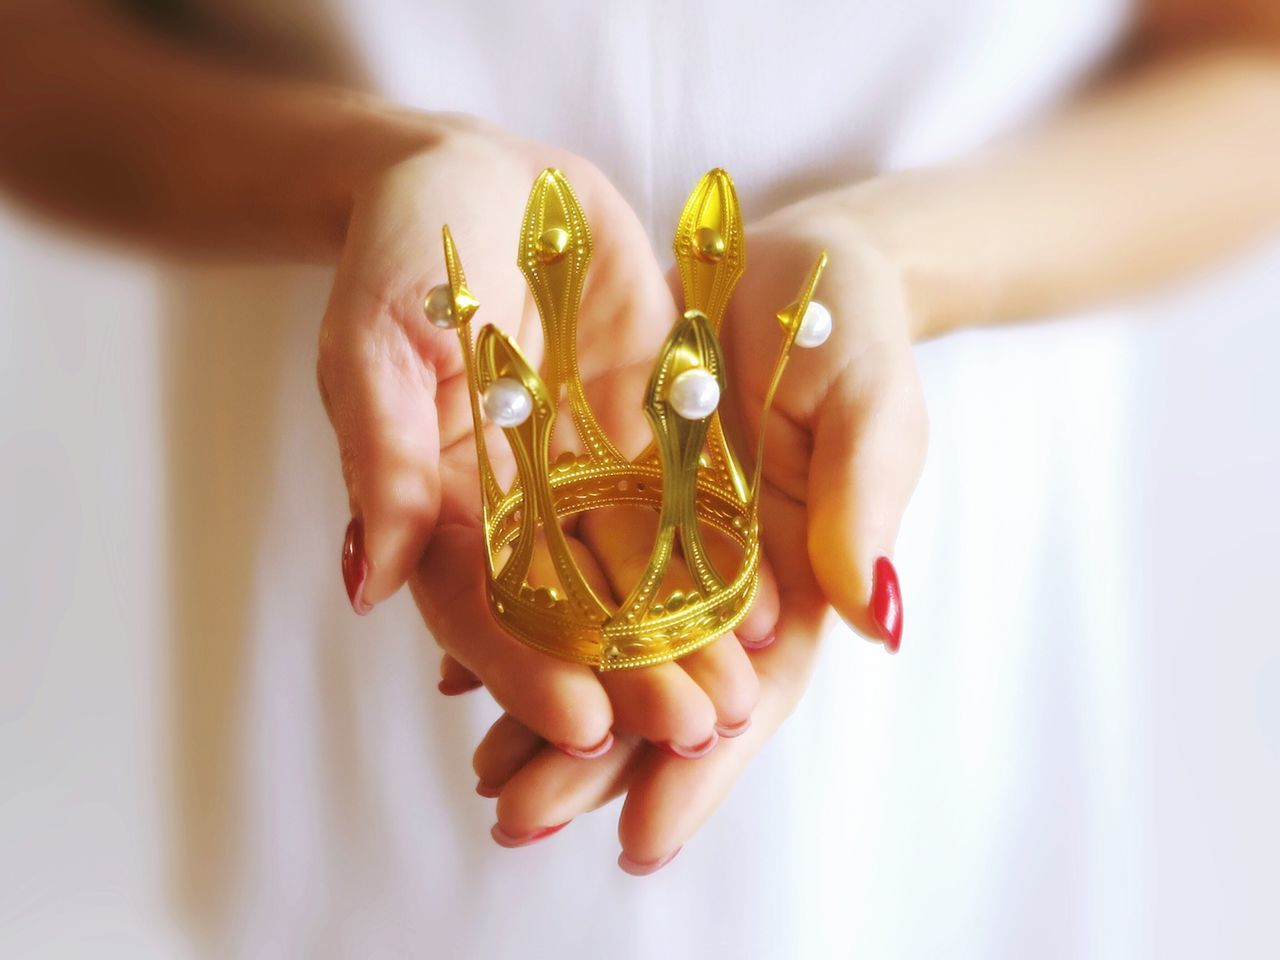 Human Hand One Person Holding Indoors  Human Body Part Close-up Women Real People Dreaming People Princess Gold Pearls Queen White Background Nail Polish Crown Beautiful Romantic Romance Selective Focus Lovely Rich Royal Childhood Place Of Heart